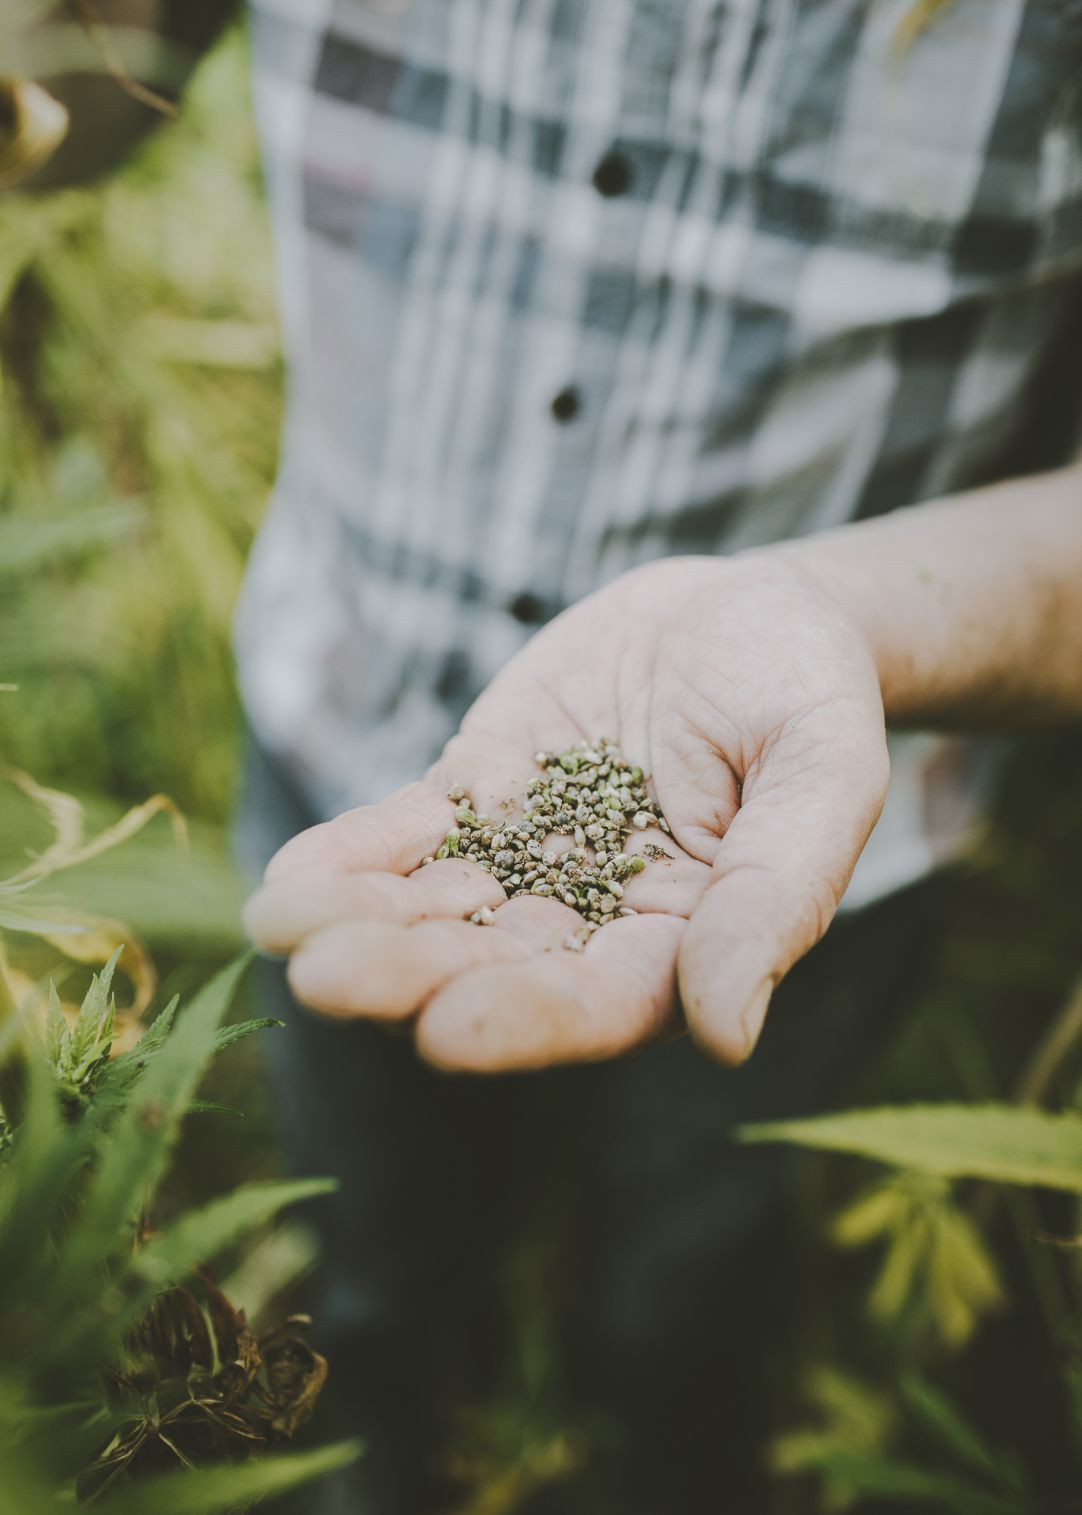 Close up of hemp seeds in hand.